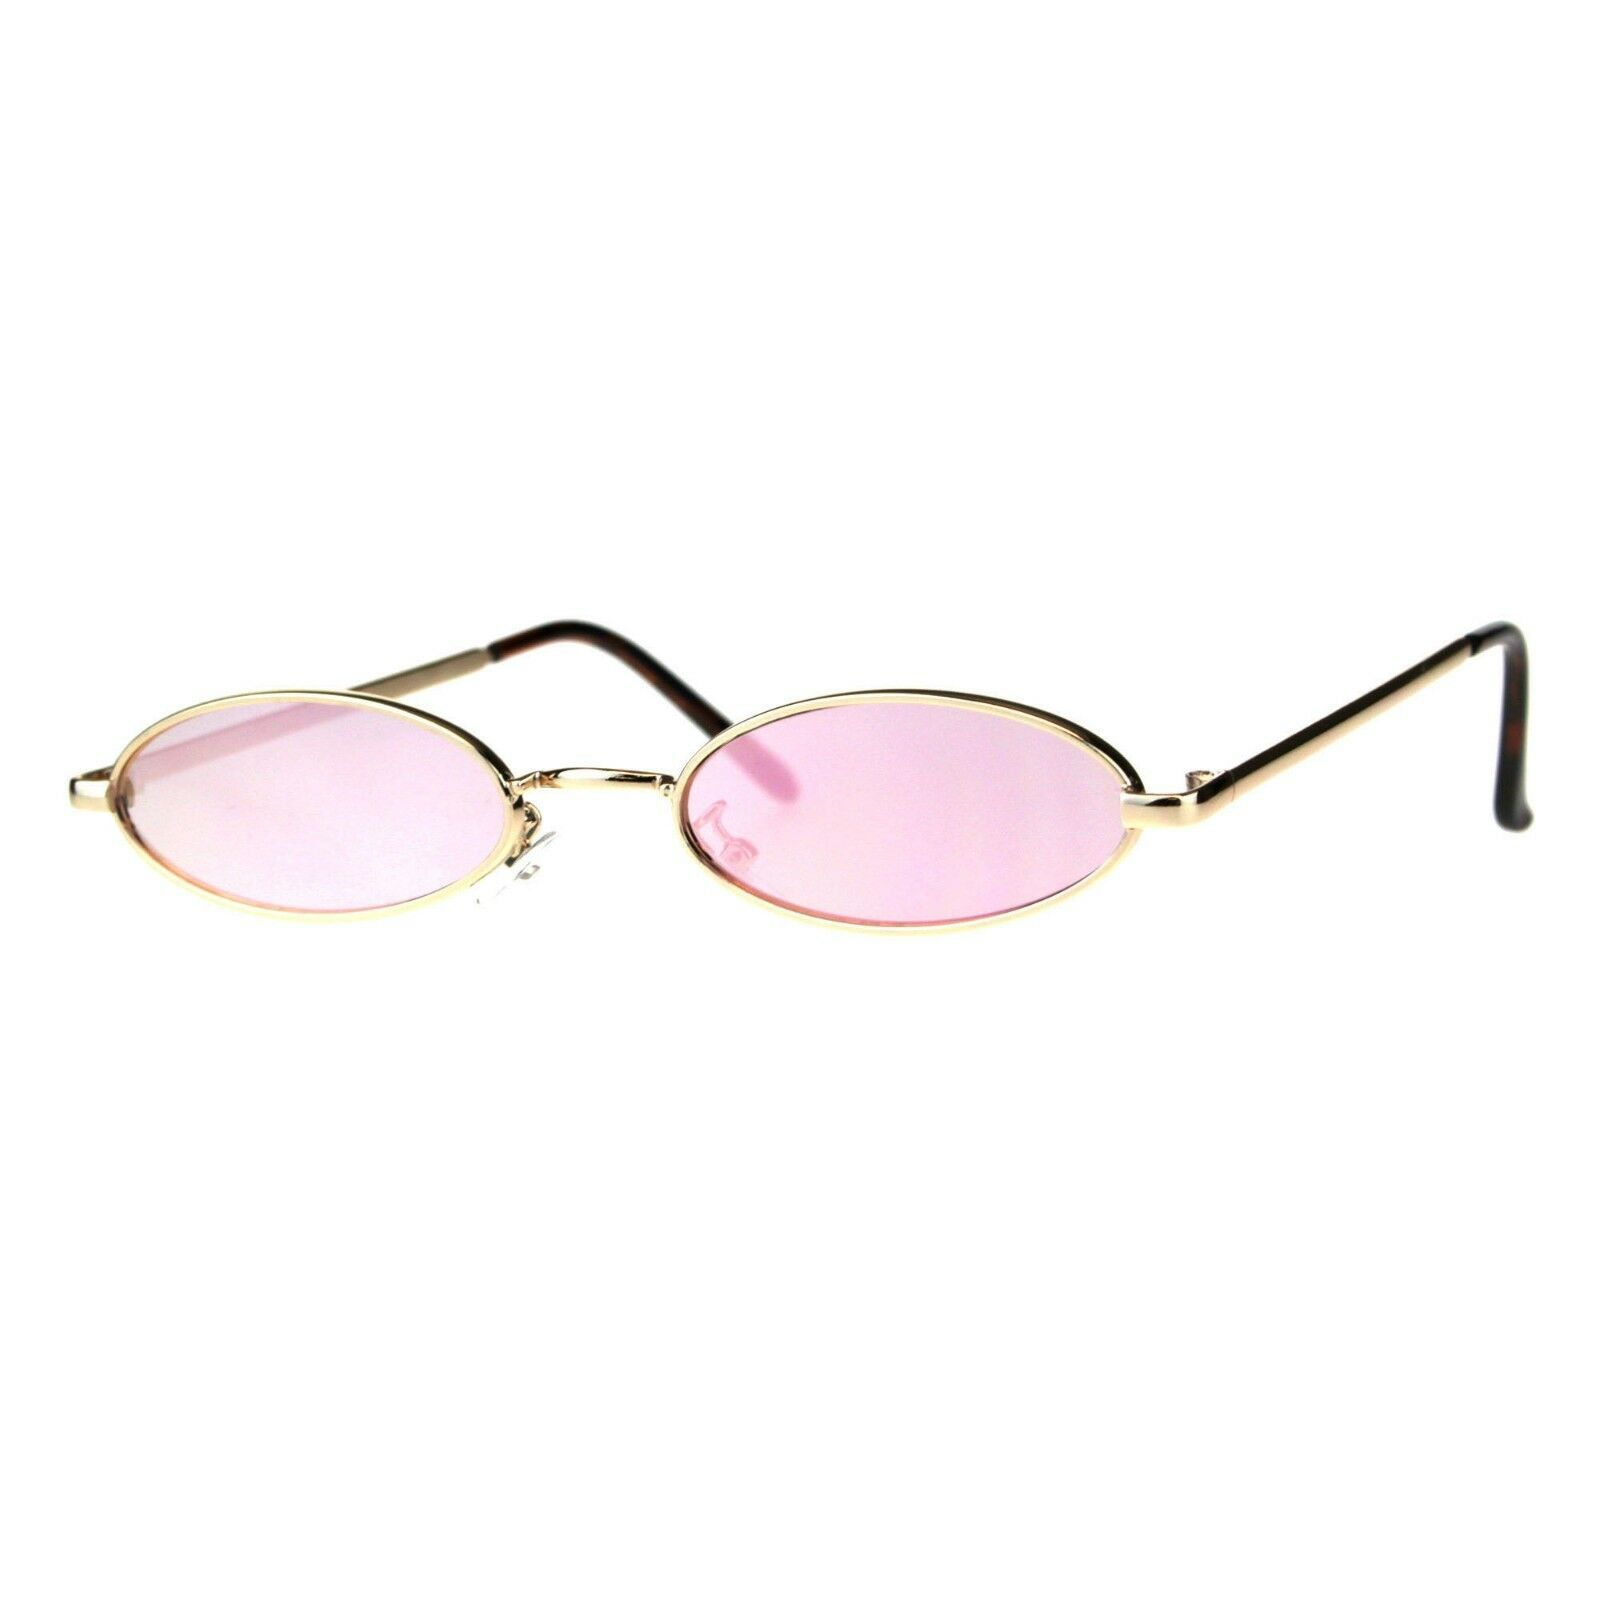 Super Skinny Sunglasses Womens Oval Flat Metal Frame Mirror Lens UV400